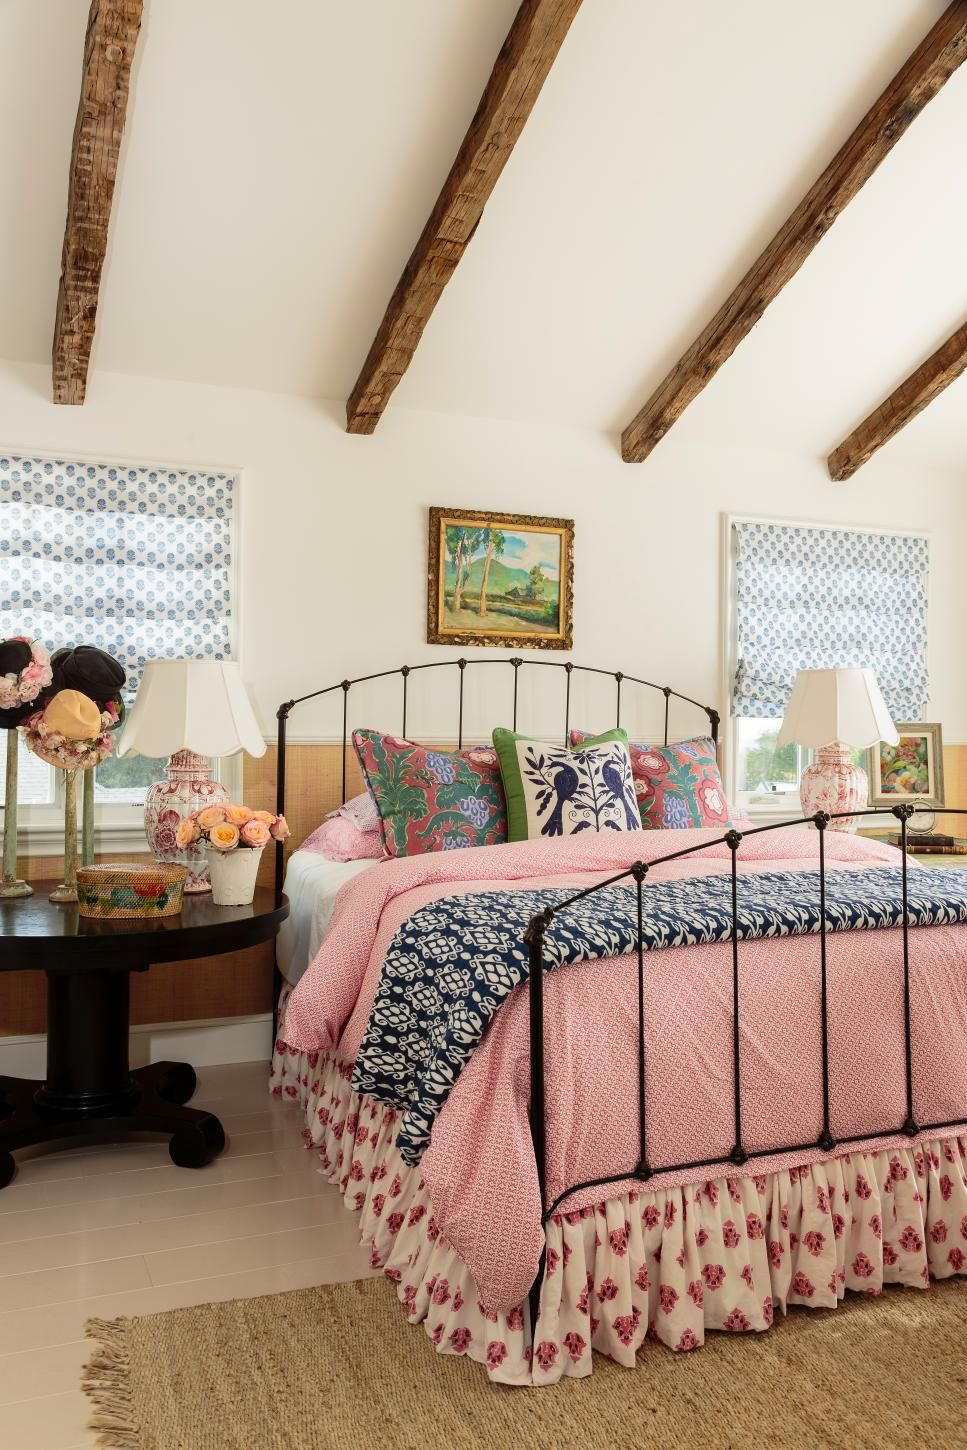 Hgtv This Country Style House Has Modern Day Style Thanks To Designer Alison Kandler S Use Of Bold Patter Vintage Bedroom Decor Pink Bedspread Bedroom Vintage